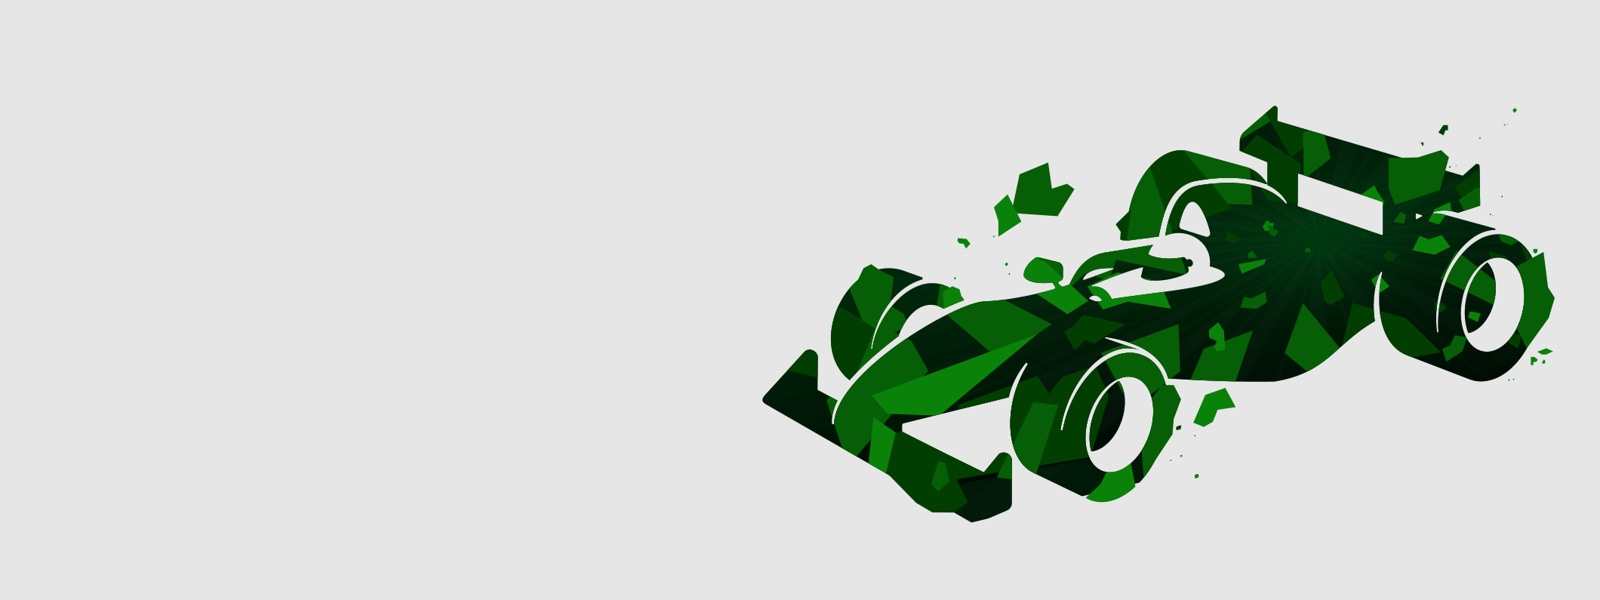 A green race car vector illustration